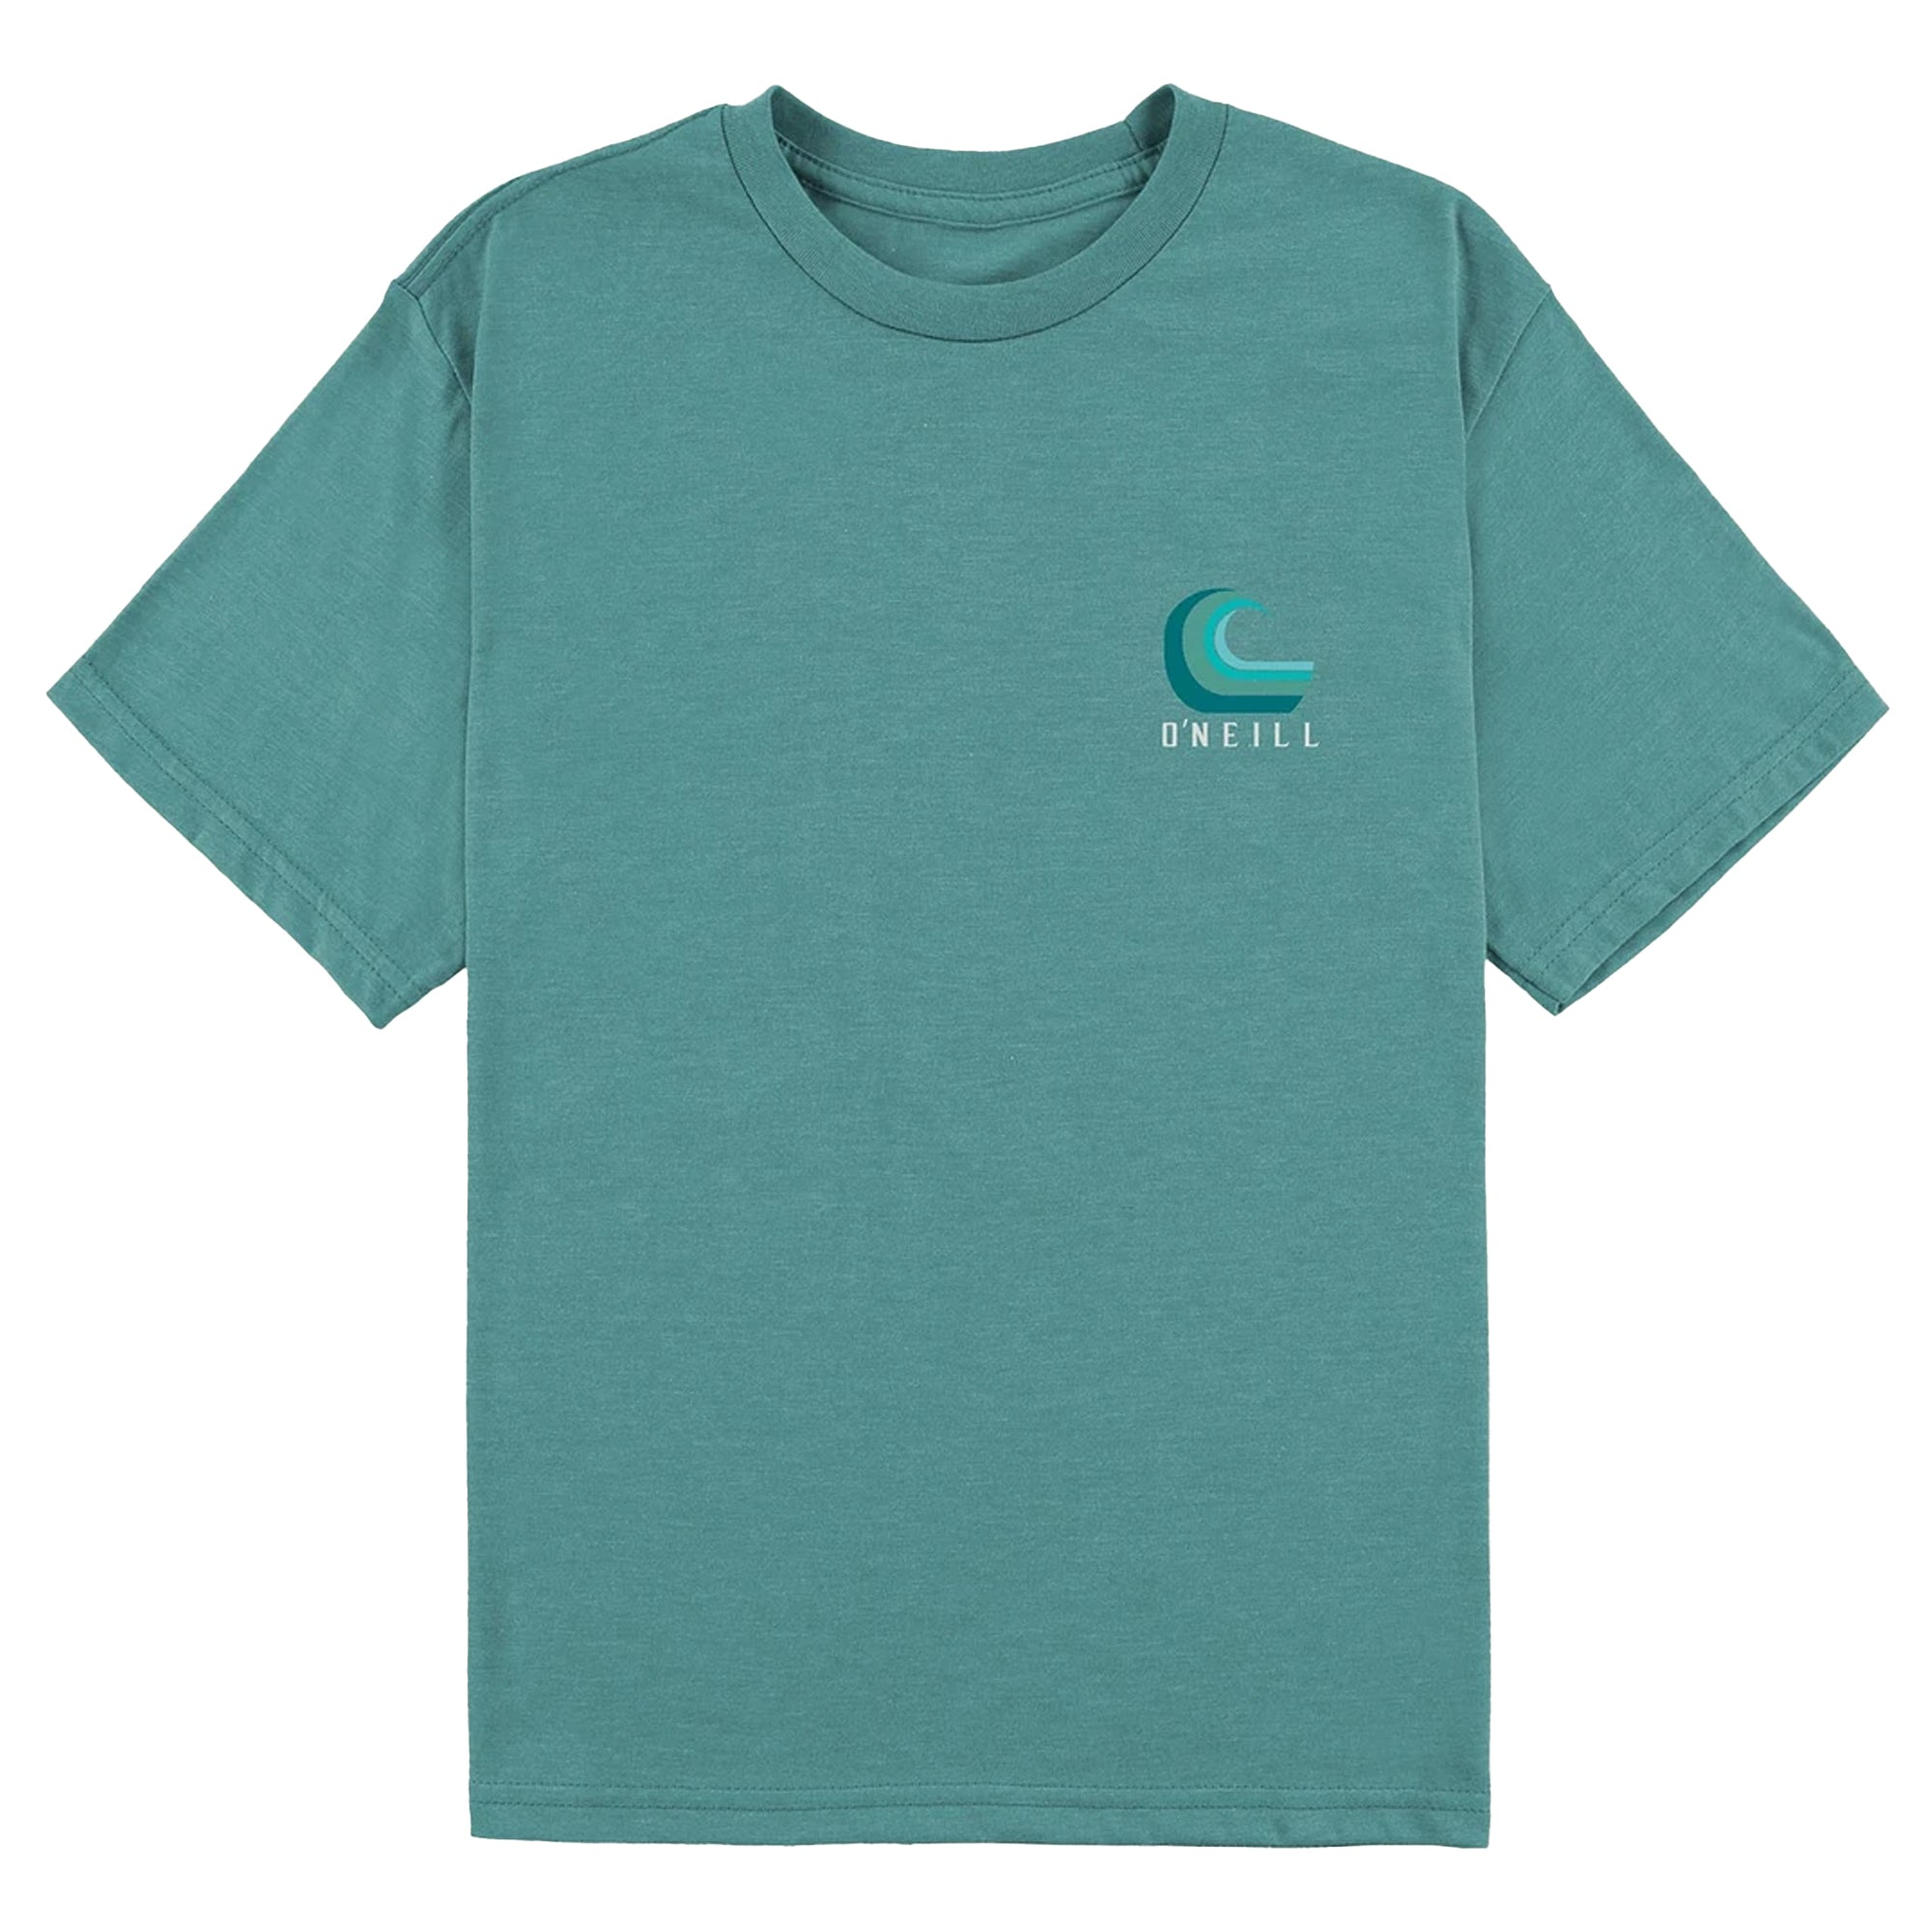 O'Neill Surf Side Youth Boy's S/S T-Shirt